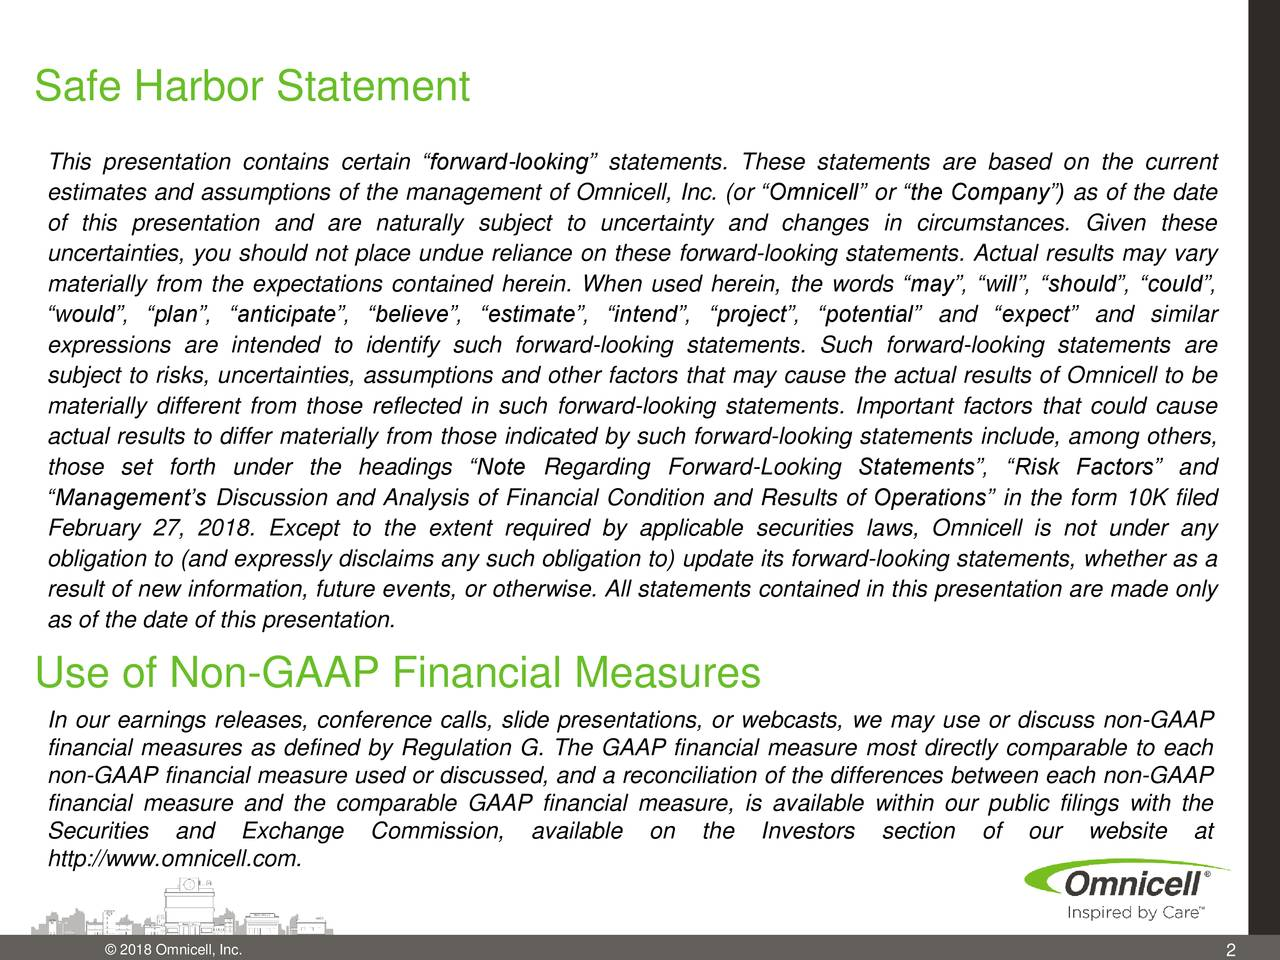 """This presentation contains certain """"forward-looking"""" statements. These statements are based on the current estimates and assumptions of the management of Omnicell, Inc. (or """"Omnicell"""" or """"the Company"""") as of the date of this presentation and are naturally subject to uncertainty and changes in circumstances. Given these uncertainties, you should not place undue reliance on these forward-looking statements. Actual results may vary materially from the expectations contained herein. When used herein, the words """"may"""", """"will"""", """"should"""", """"could"""", """"would"""", """"plan"""", """"anticipate"""", """"believe"""", """"estimate"""", """"intend"""", """"project"""", """"potential"""" and """"expect"""" and similar expressions are intended to identify such forward-looking statements. Such forward-looking statements are subject to risks, uncertainties, assumptions and other factors that may cause the actual results of Omnicell to be materially different from those reflected in such forward-looking statements. Important factors that could cause actual results to differ materially from those indicated by such forward-looking statements include, among others, those set forth under the headings """"Note Regarding Forward-Looking Statements"""", """"Risk Factors"""" and """"Management's Discussion and Analysis of Financial Condition and Results of Operations"""" in the form 10K filed February 27, 2018. Except to the extent required by applicable securities laws, Omnicell is not under any obligation to (and expressly disclaims any such obligation to) update its forward-looking statements, whether as a result of new information, future events, or otherwise. All statements contained in this presentation are made only as of the date of this presentation. Use of Non-GAAP Financial Measures In our earnings releases, conference calls, slide presentations, or webcasts, we may use or discuss non-GAAP financial measures as defined by Regulation G. The GAAP financial measure most directly comparable to each non-GAAP financial measure used or discussed, and a reconci"""